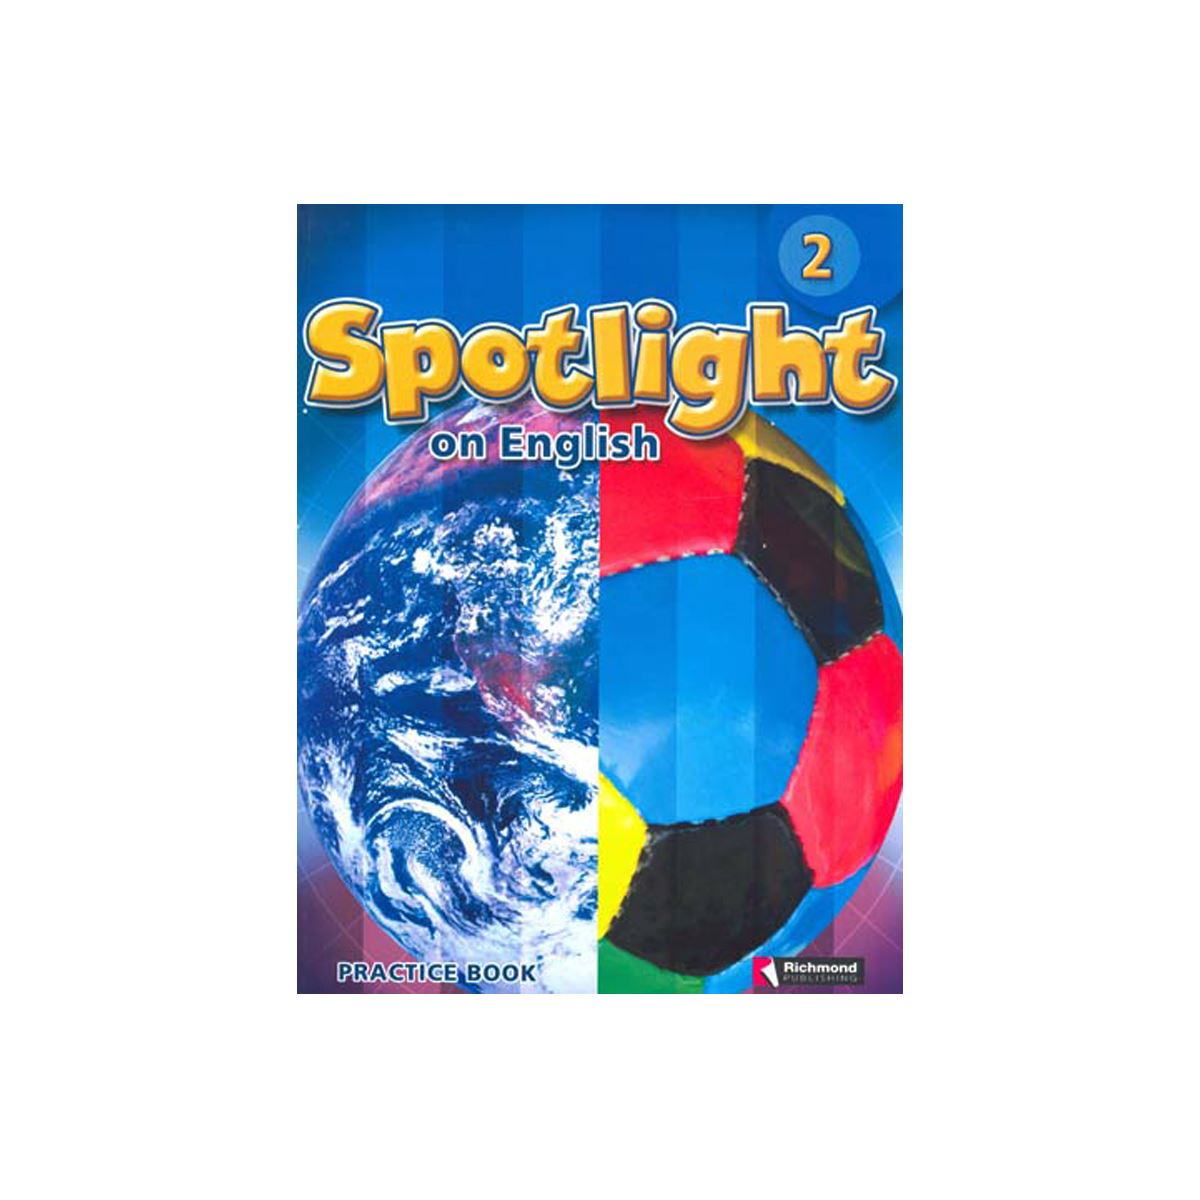 Spotlight On English 2 Practice Book